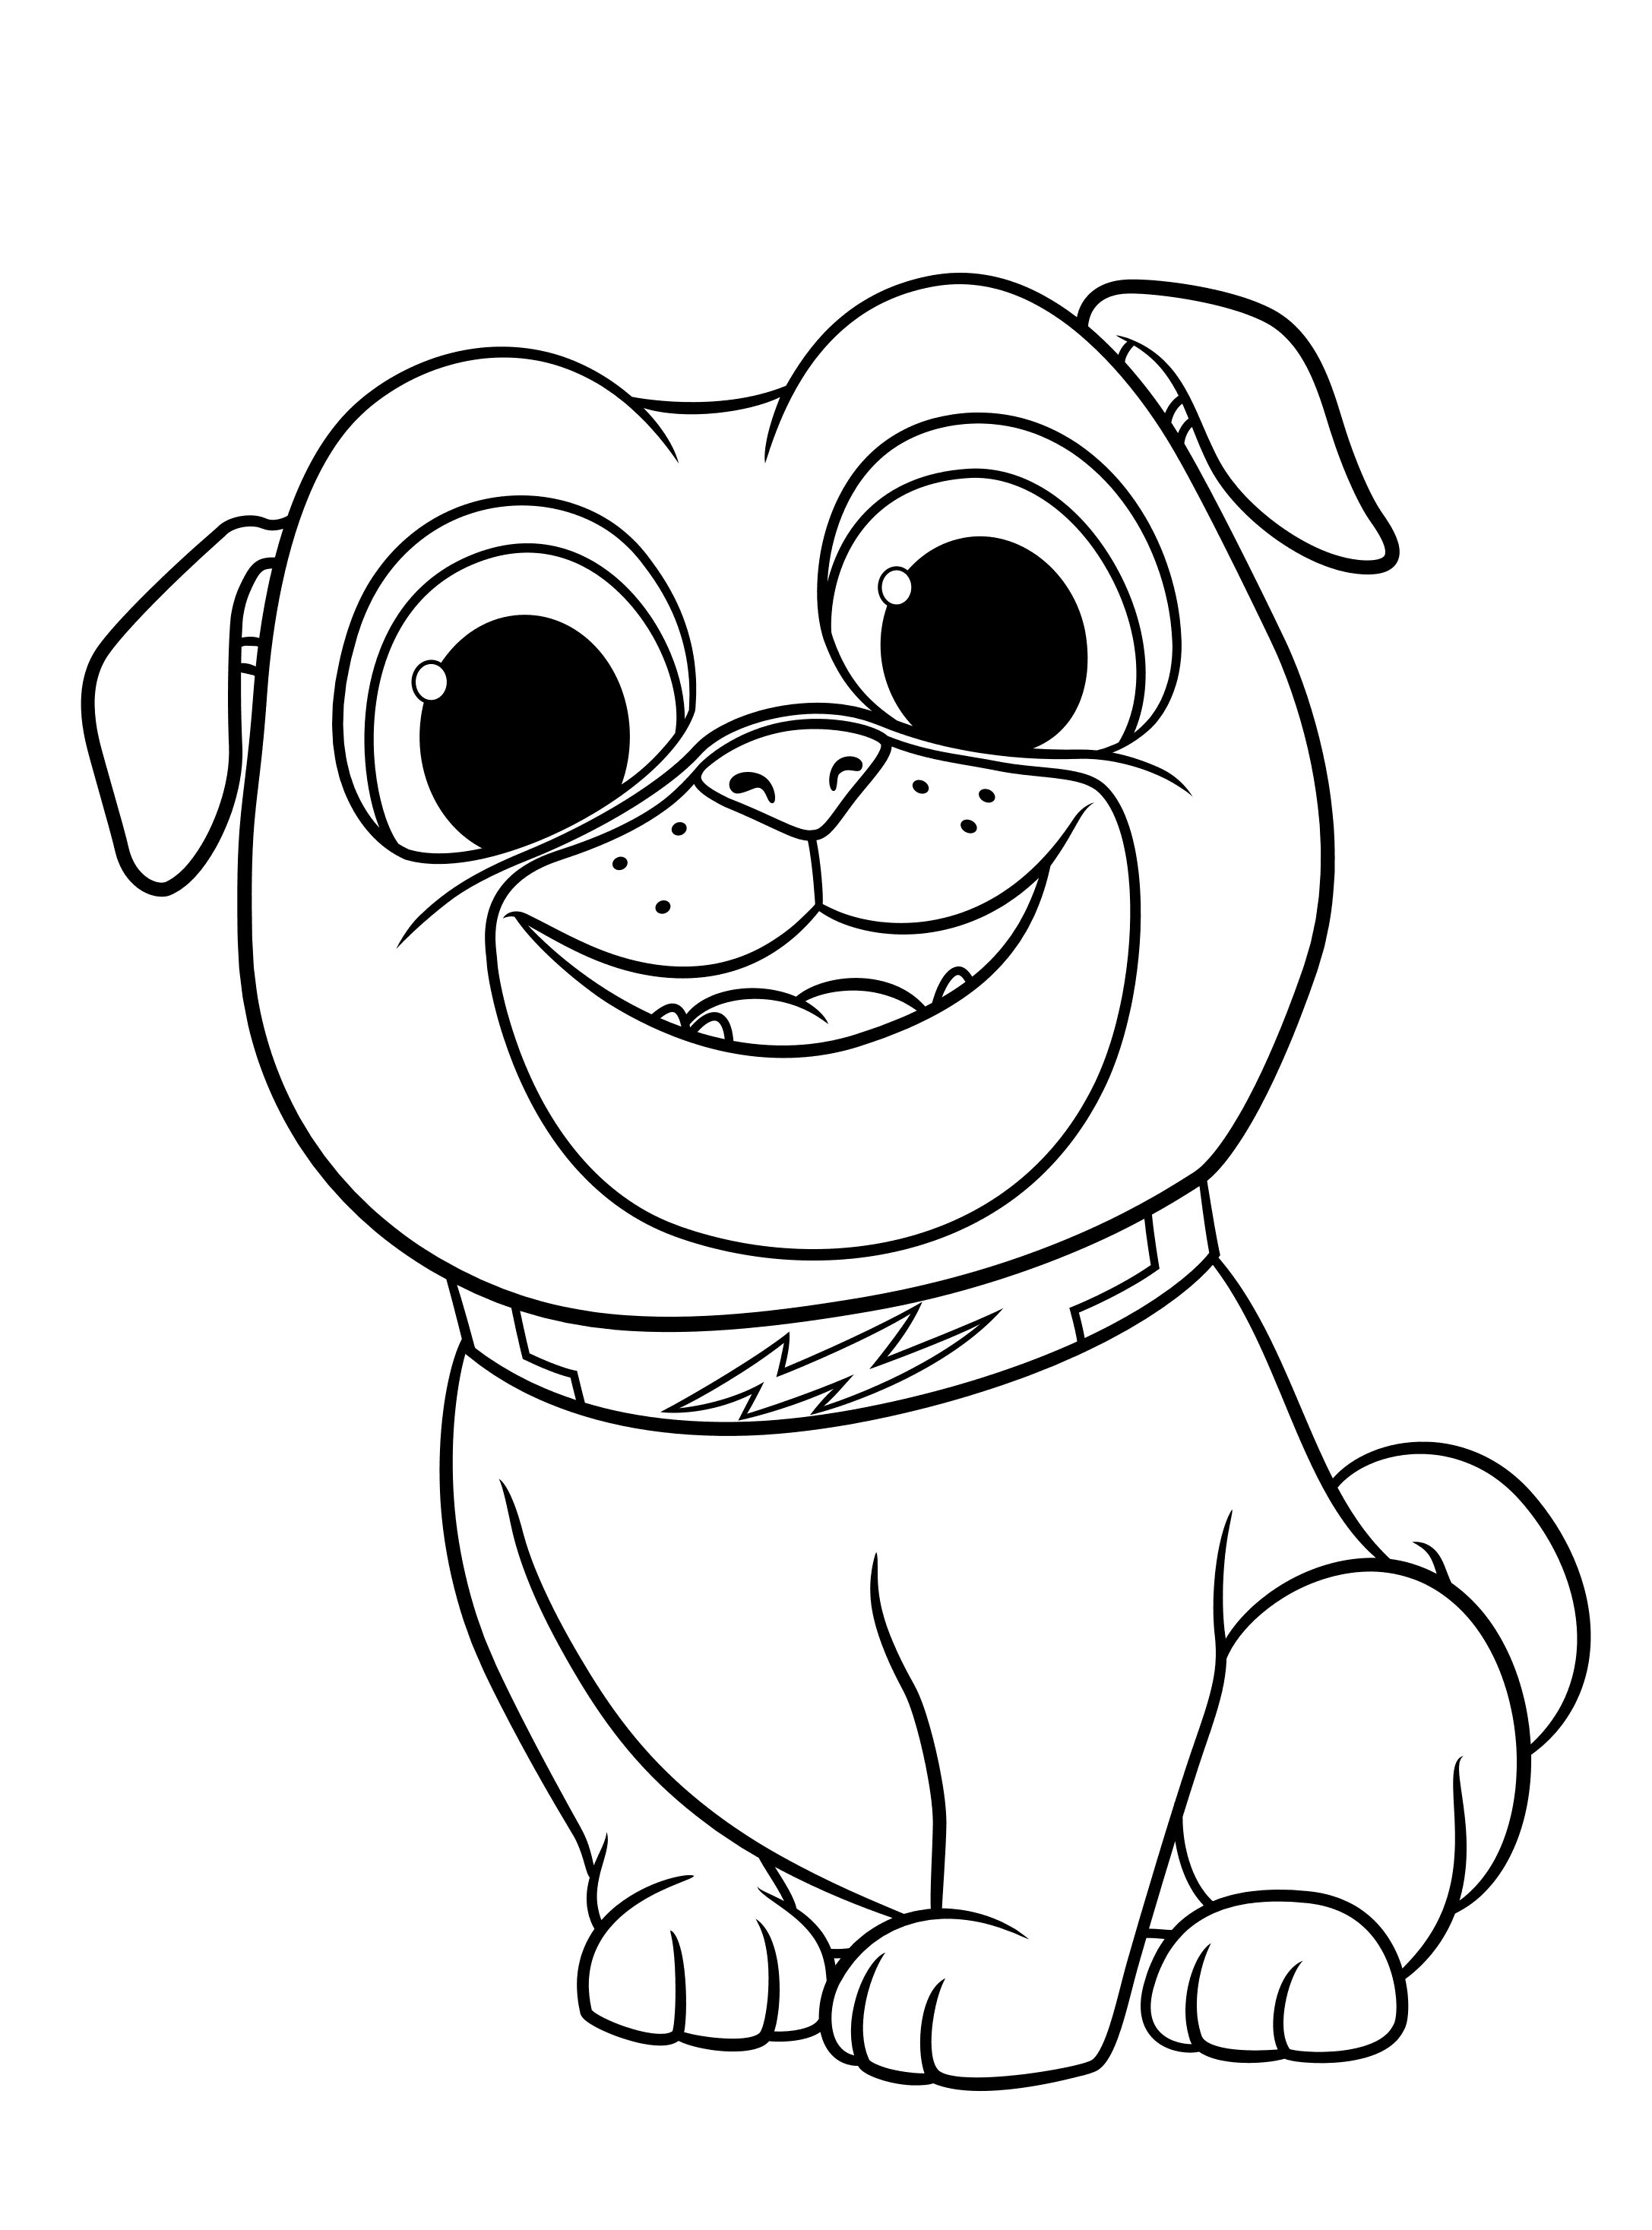 puppy pictures for coloring puppy coloring pages best coloring pages for kids coloring for pictures puppy